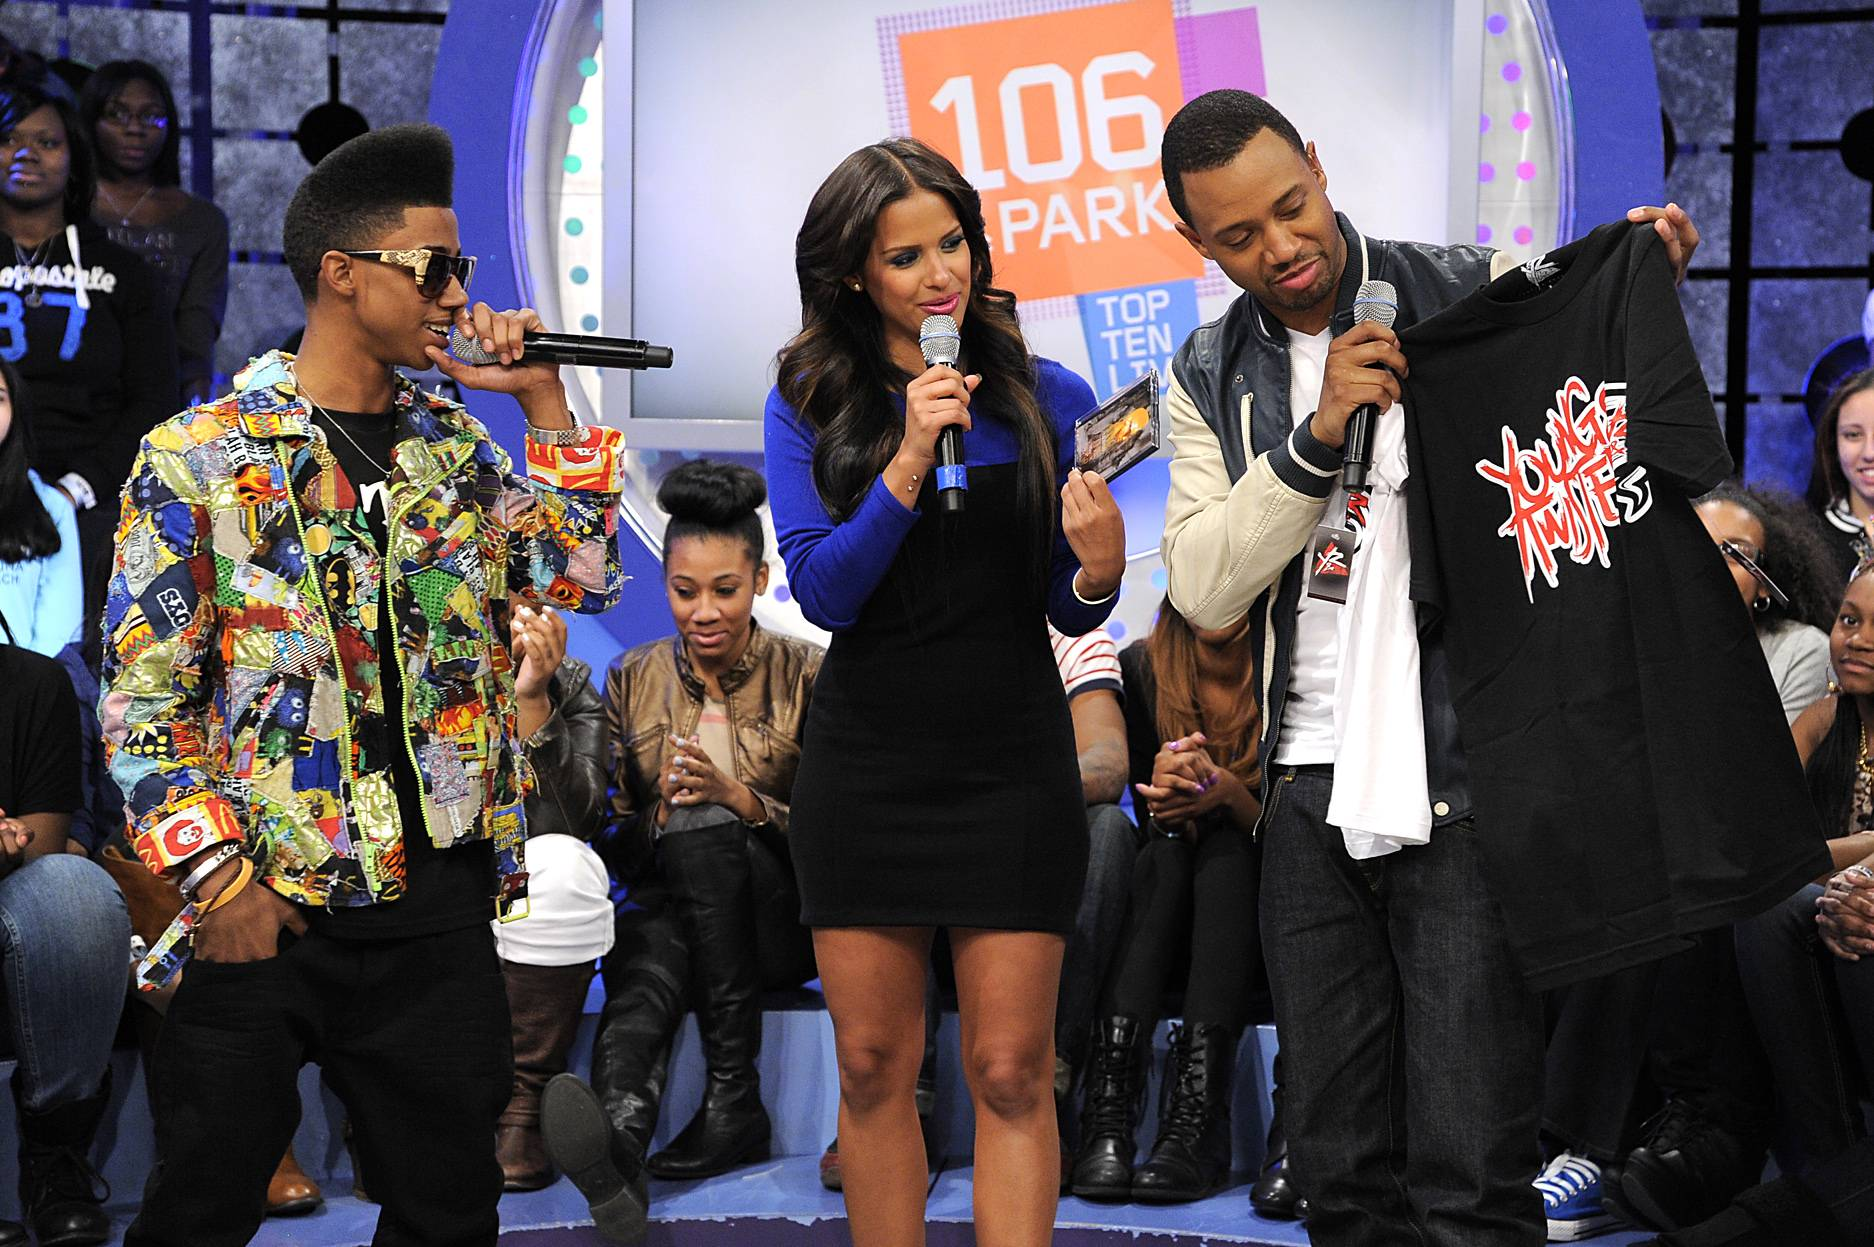 A Gift for You - Lil Twist offers gifts to Rocsi Diaz and Terrence J at 106 & Park, January 05, 2012.(Photo: John Ricard/BET)